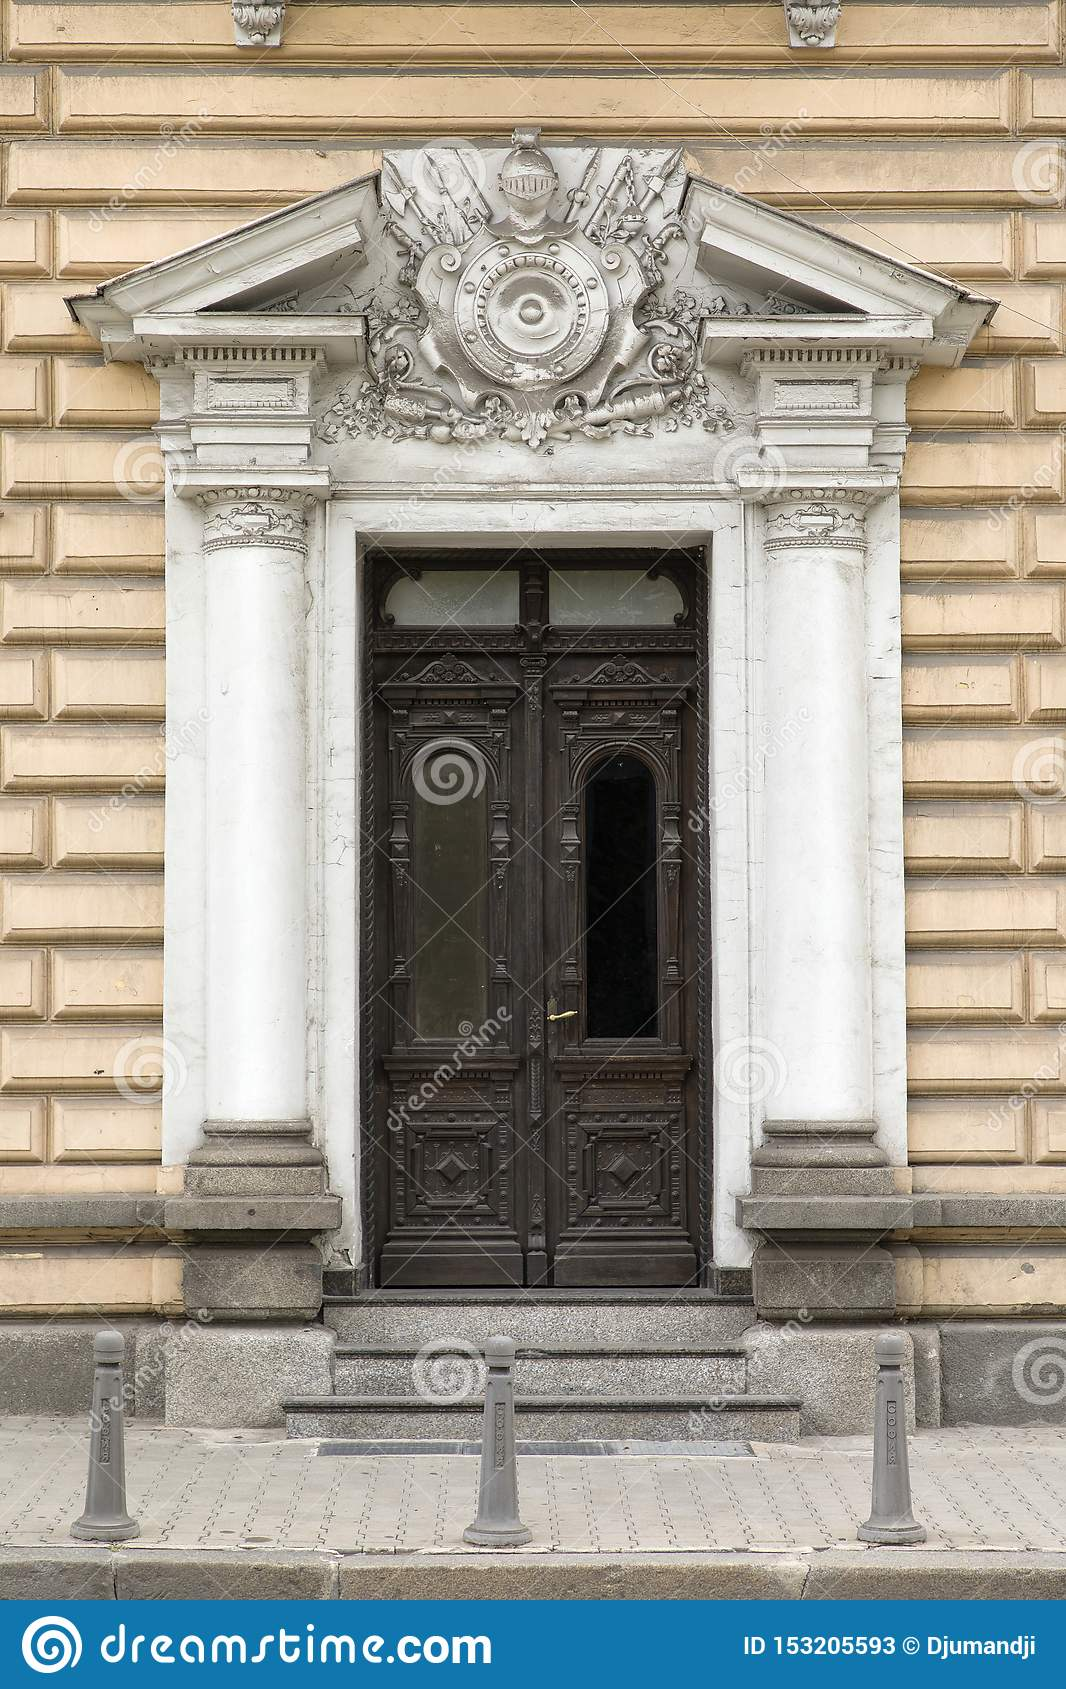 Entrance to the Military Club Building in downtown Sofia, Bulgaria